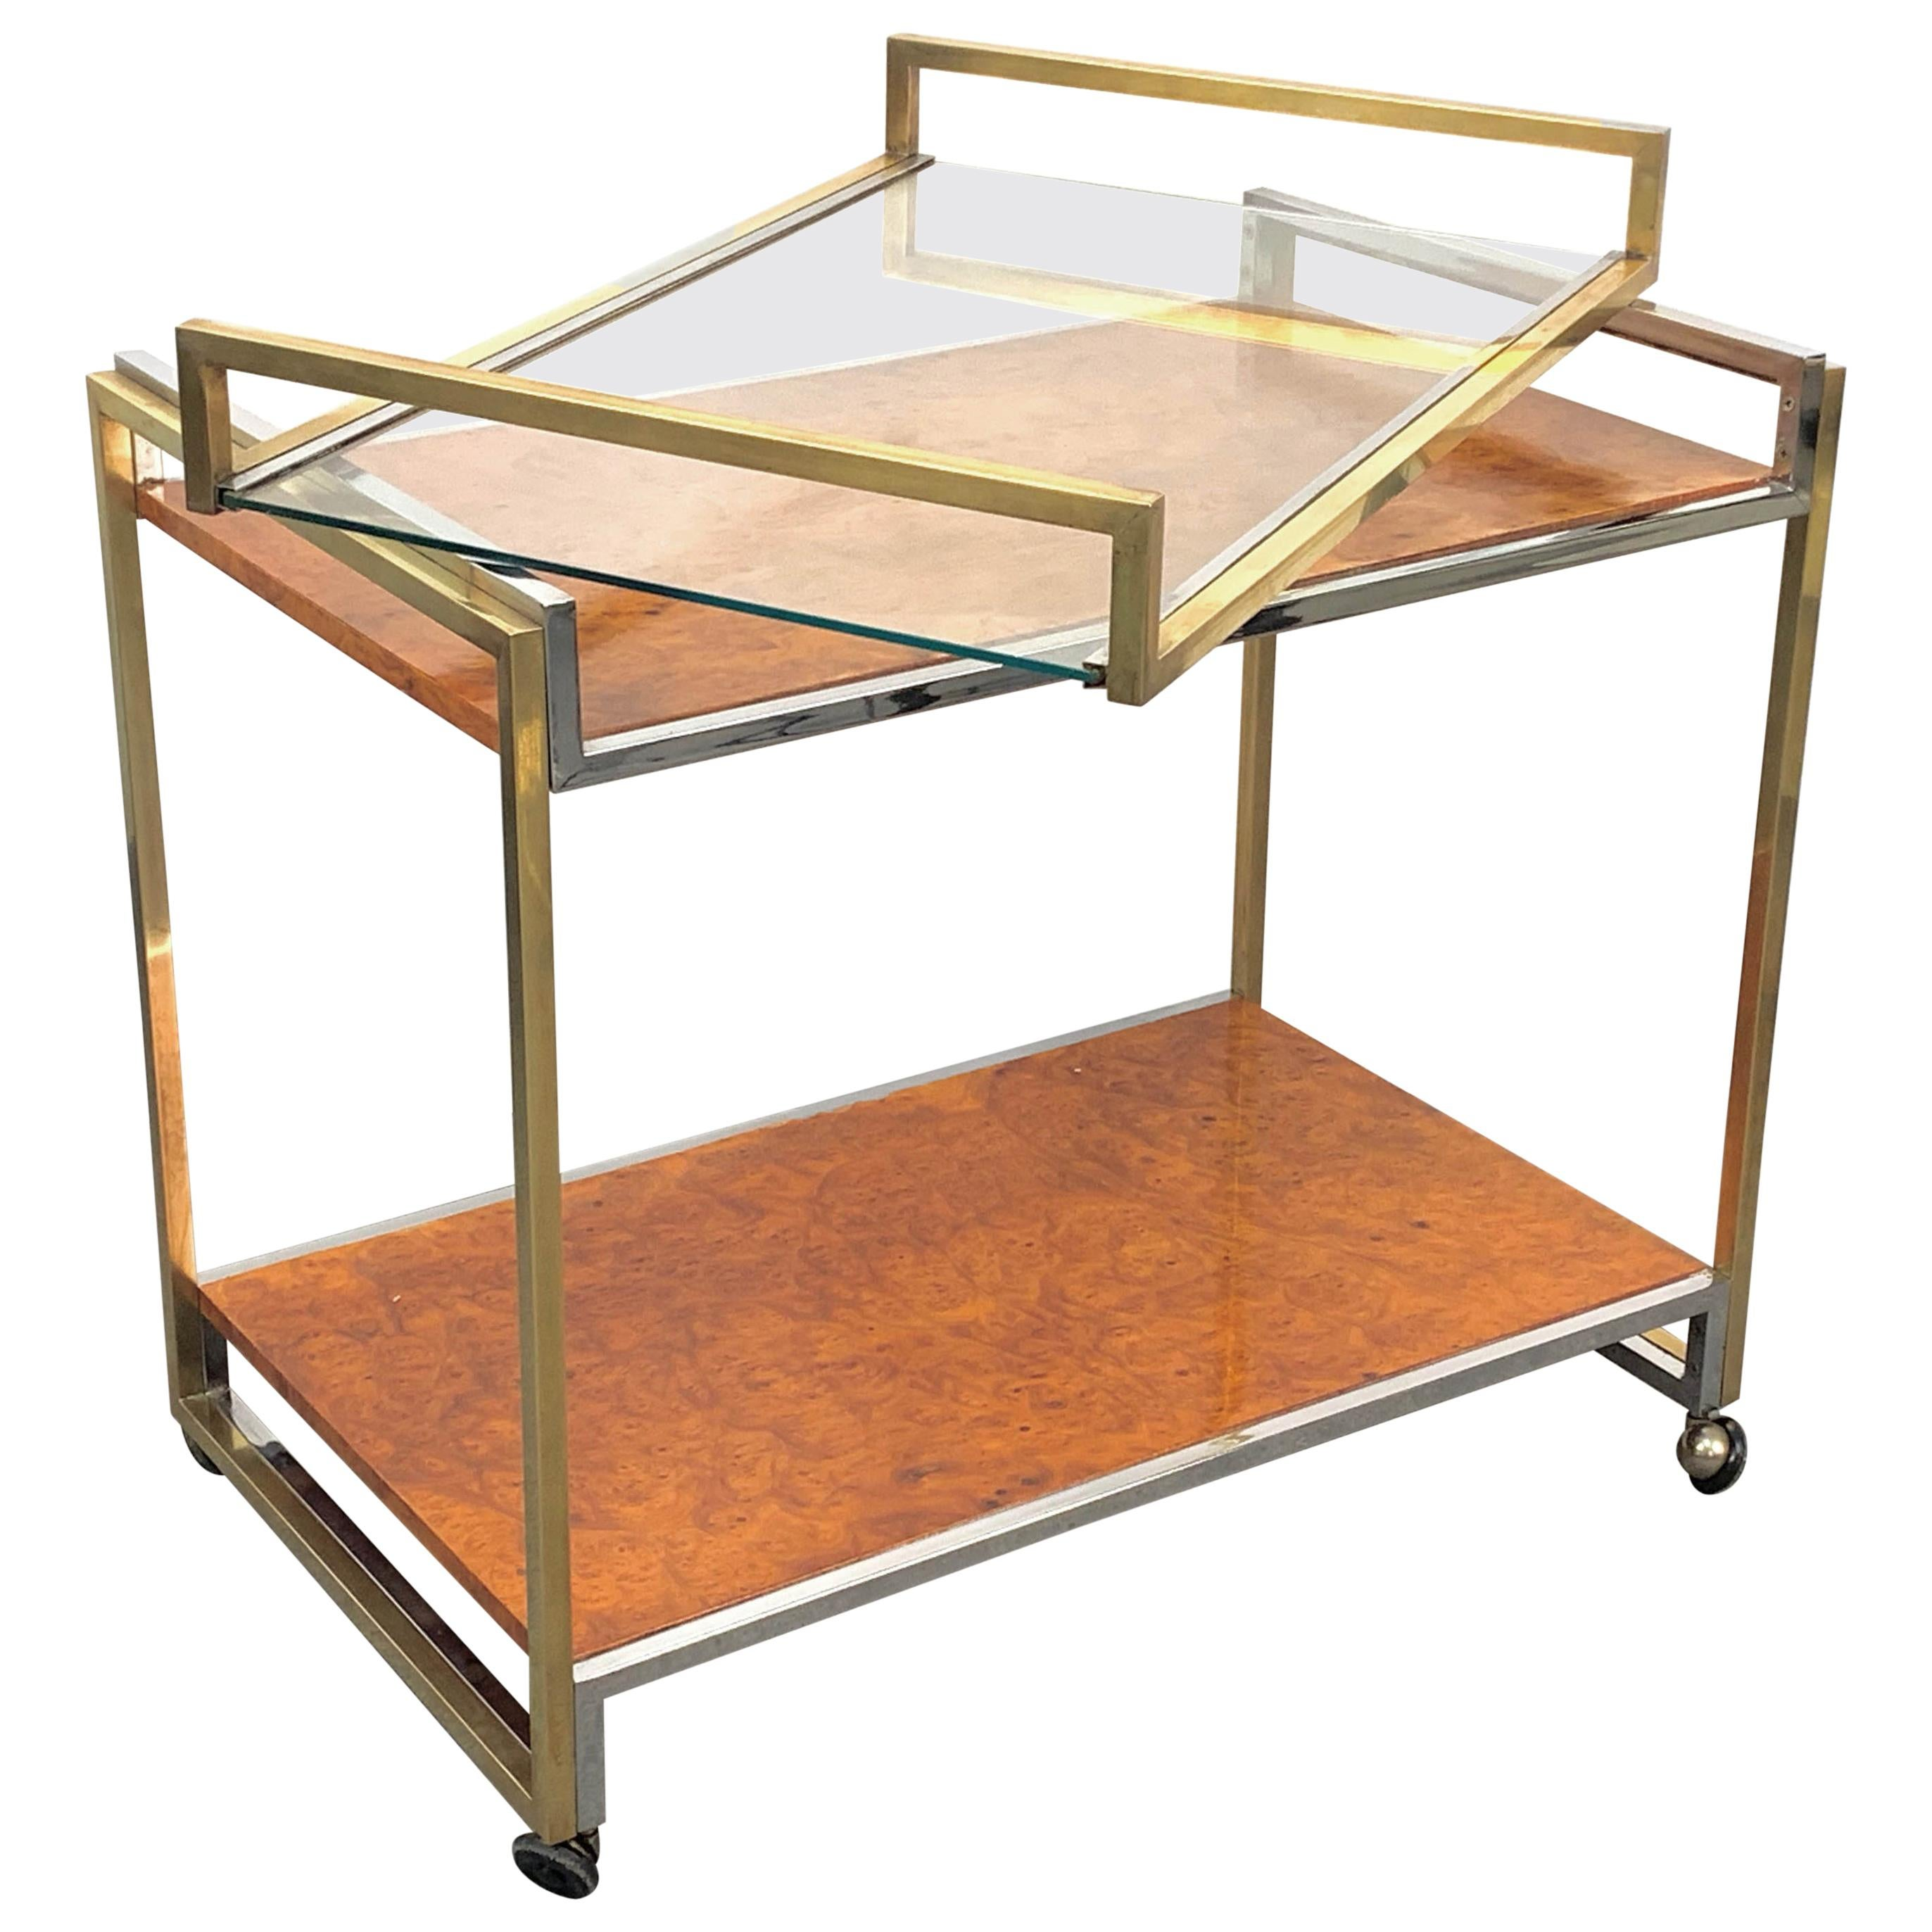 Modern Willy Rizzo Brass and Briar Italian Trolley with Service Tray, 1980s